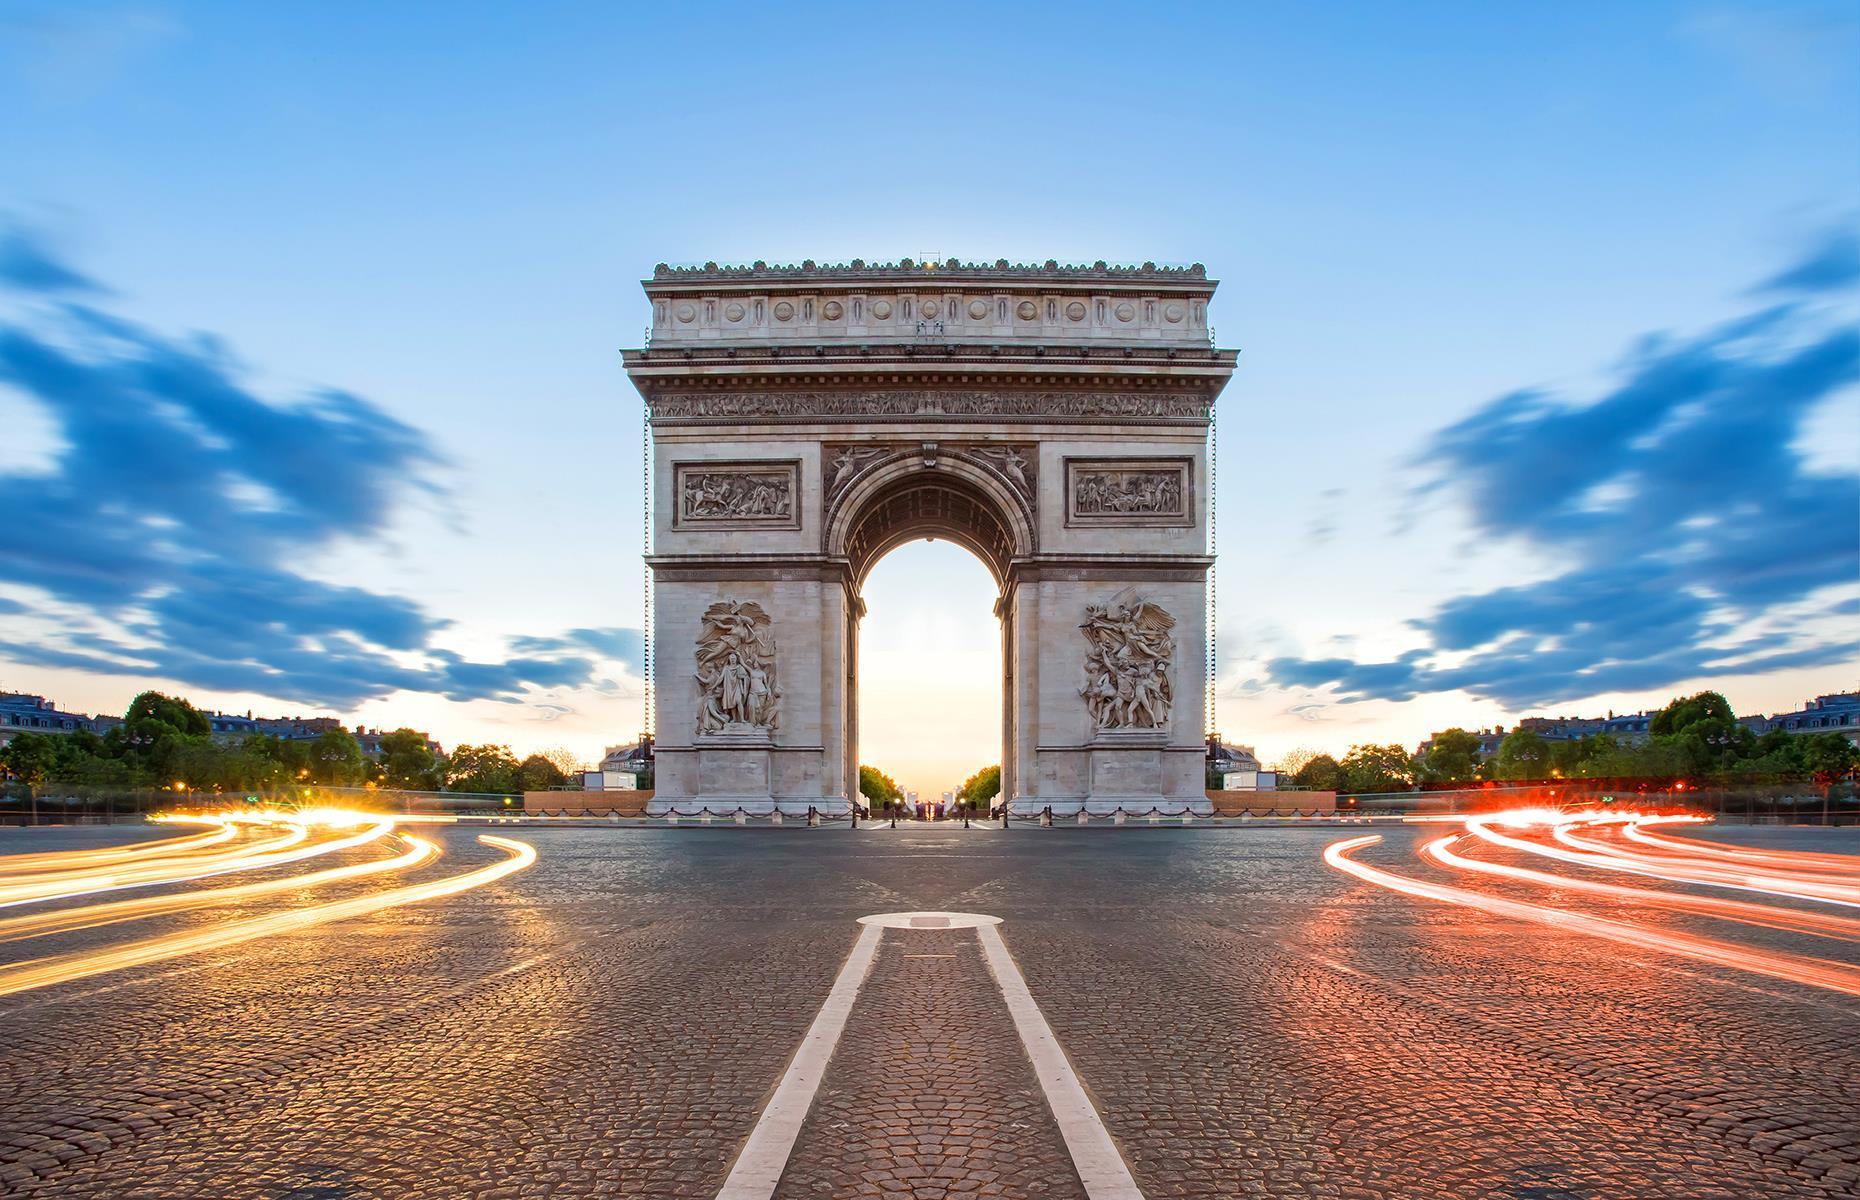 Slide 35 of 53: Officially called Arc de Triomphe de l'Étoile, it commemorates the French soldiers who fought and died in the French Revolutionary and Napoleonic Wars. Inscriptions of all French victories and generals cover the arc's inner and outer surfaces.